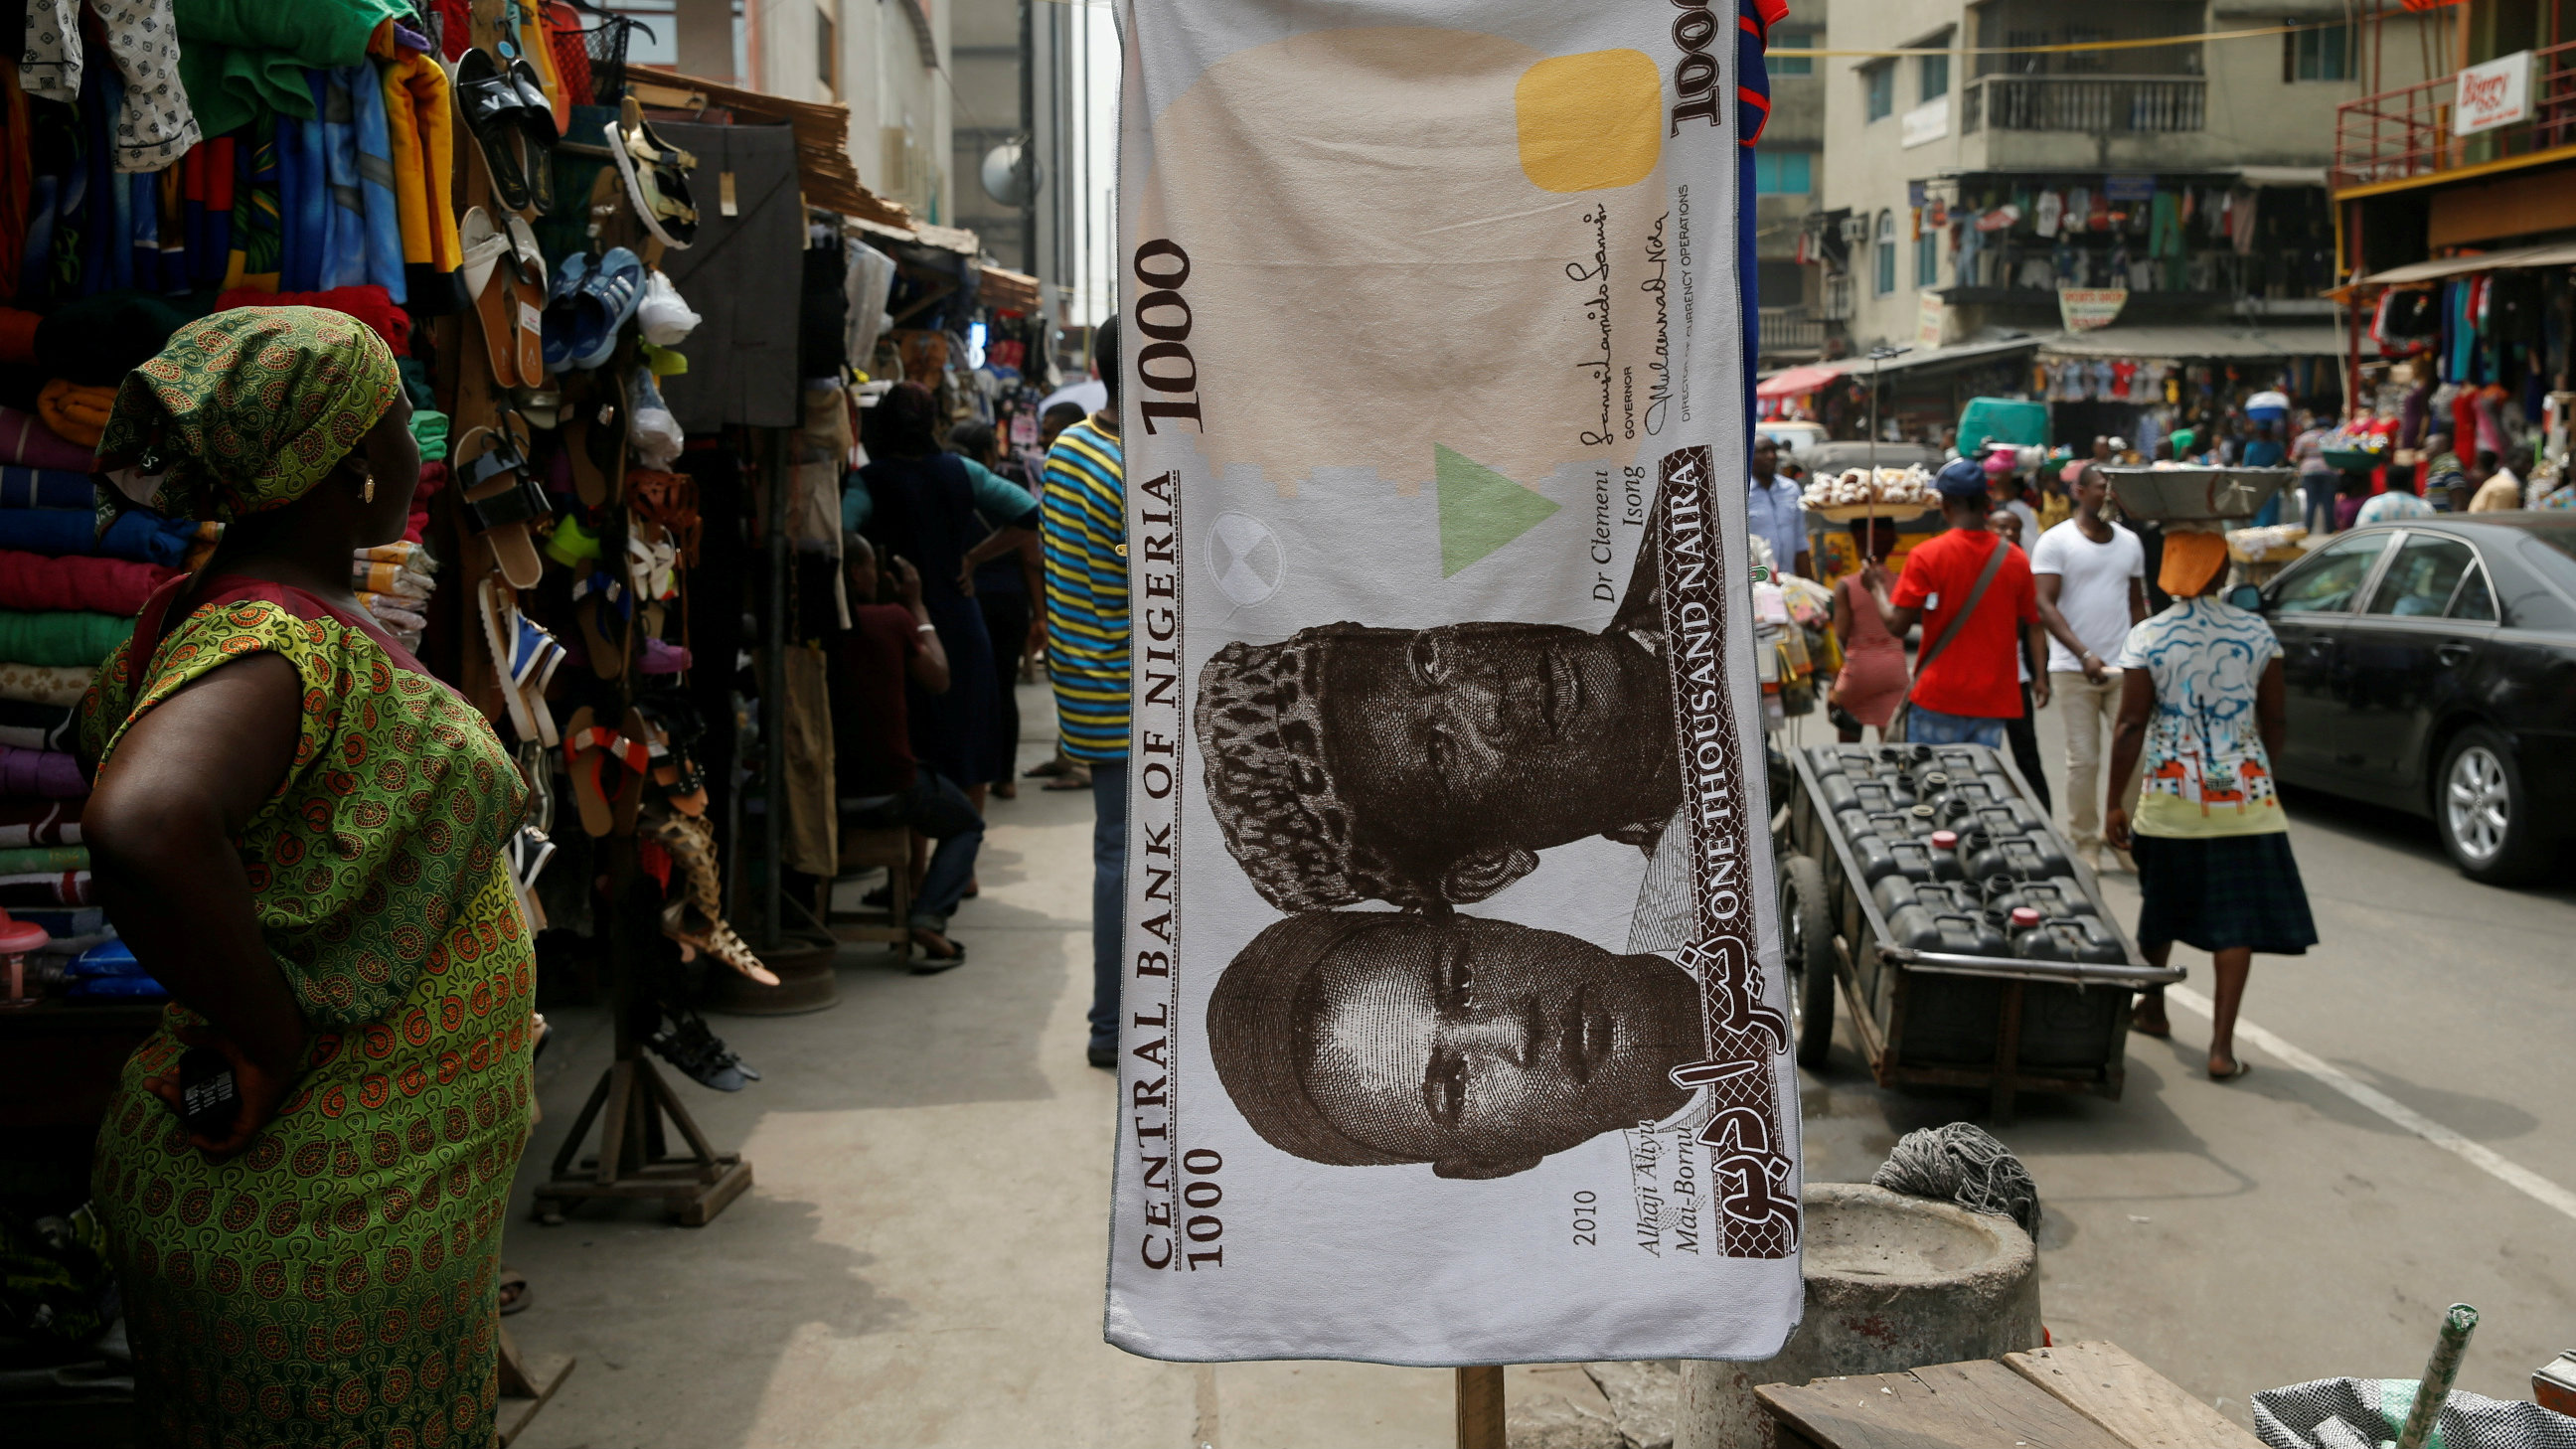 A towel with a print of the Nigerian naira is displayed for sale at a street market in the central business district of Lagos, Nigeria, February 4, 2016.